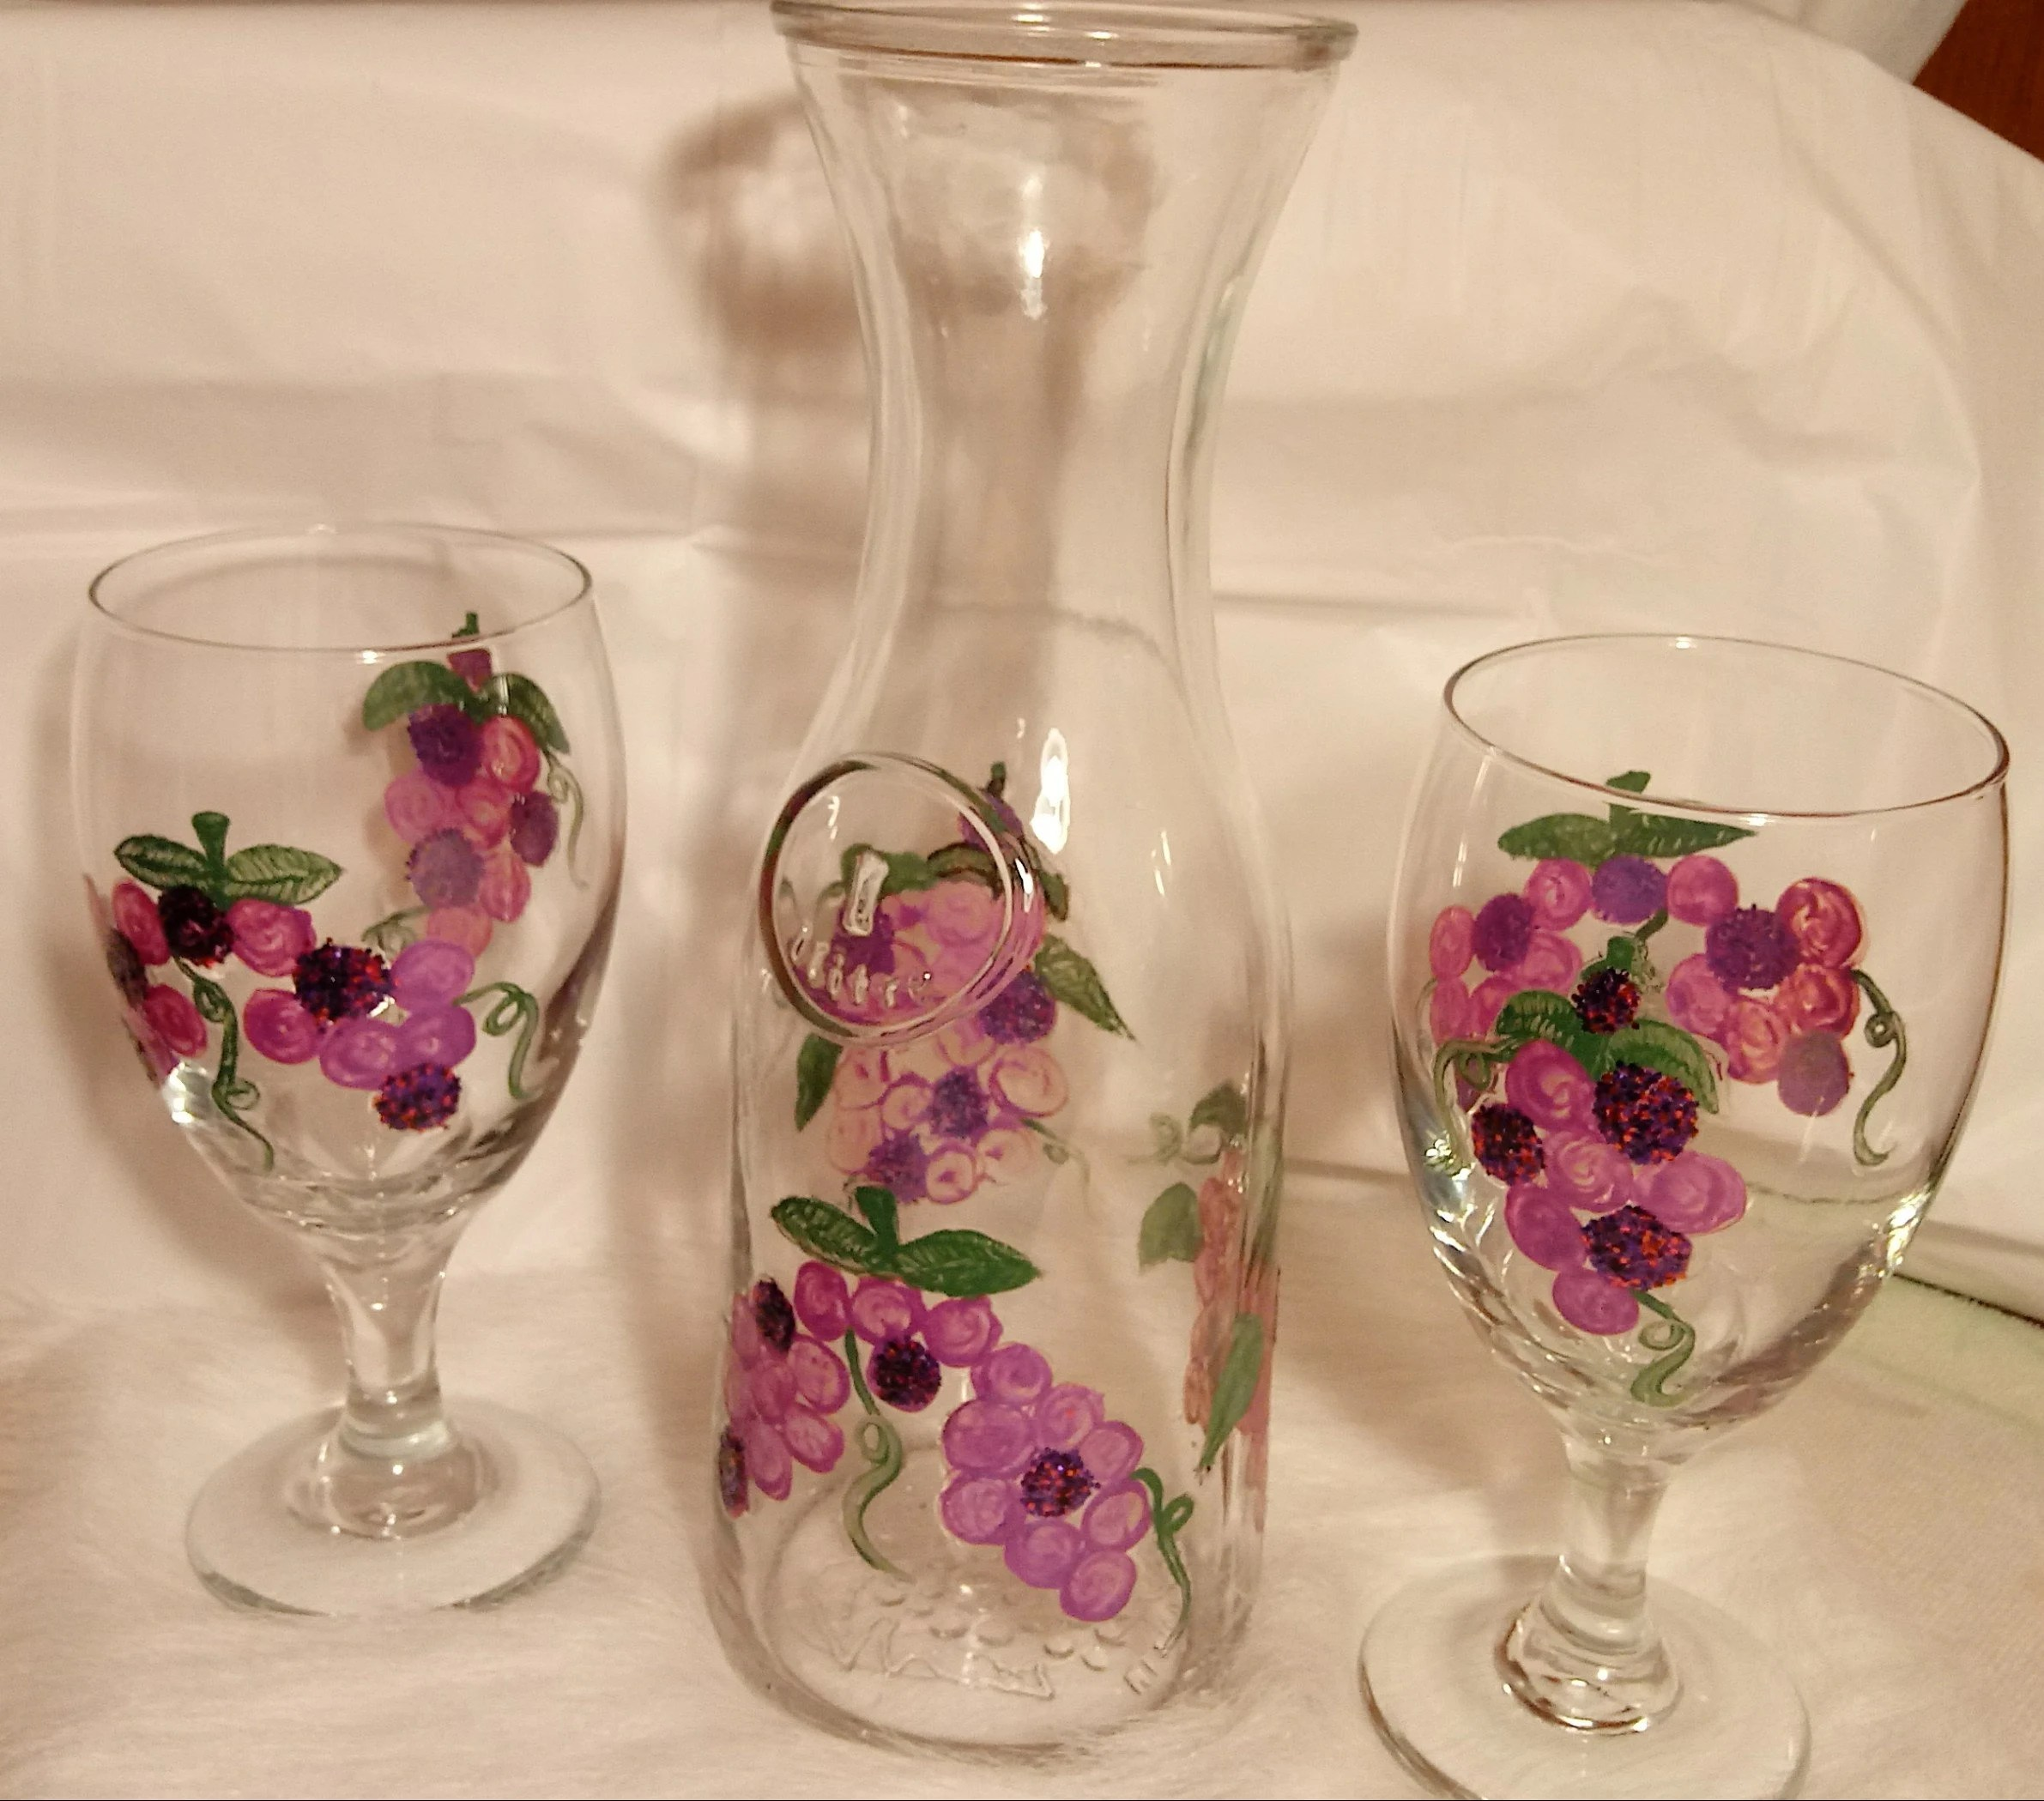 Decanter Wine Glas Purple Grapes Wine Glasses And Decanter 3 Piece Set 2 Glasses And 1 Glass Decanter Hand Painted